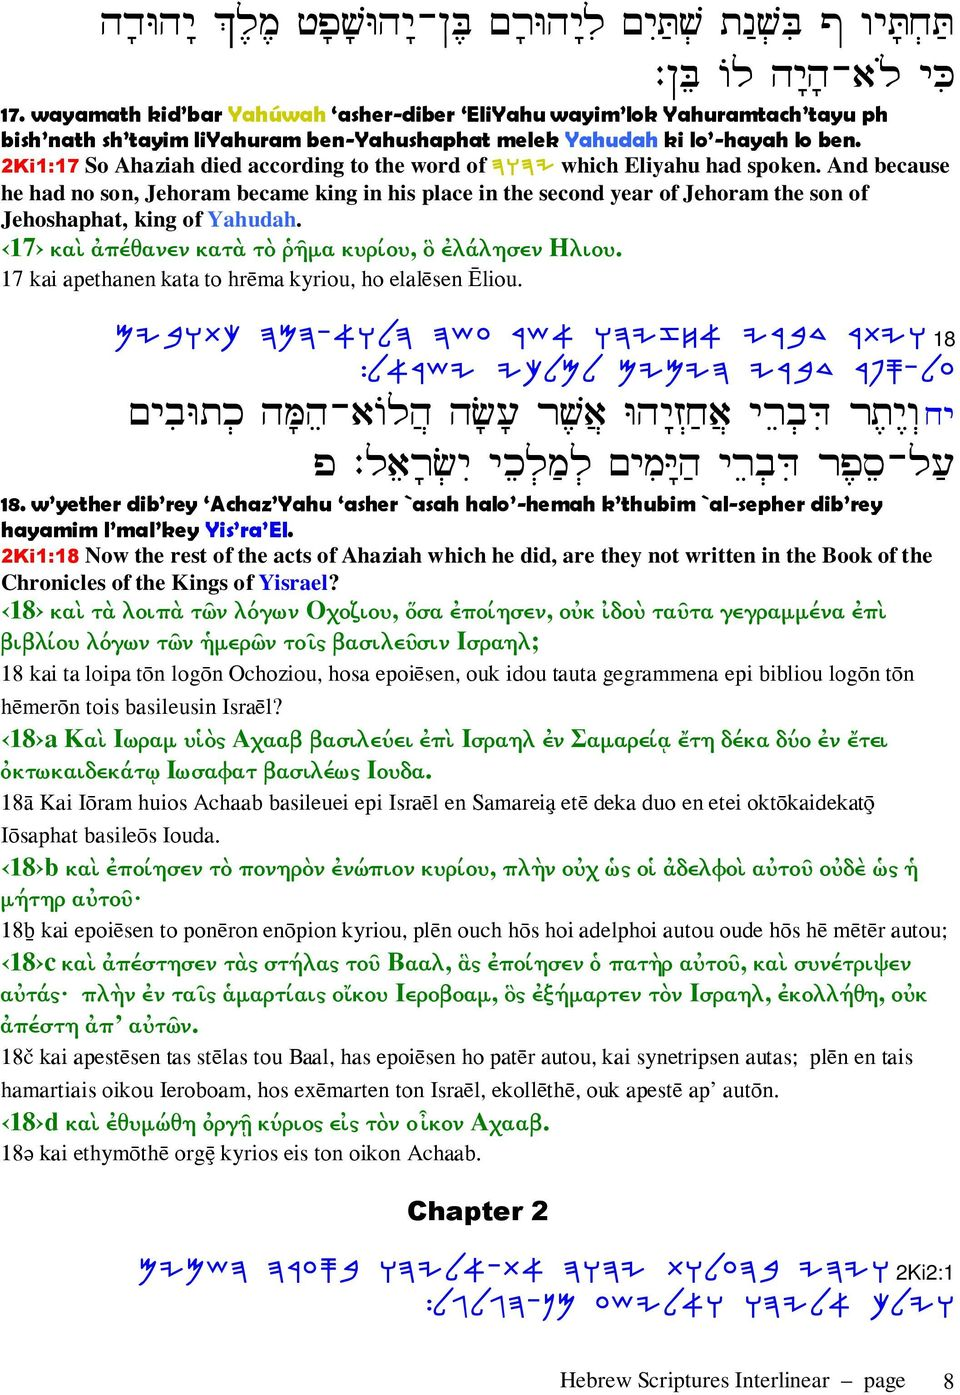 2Ki1:17 So Ahaziah died according to the word of DEDI which Eliyahu had spoken.